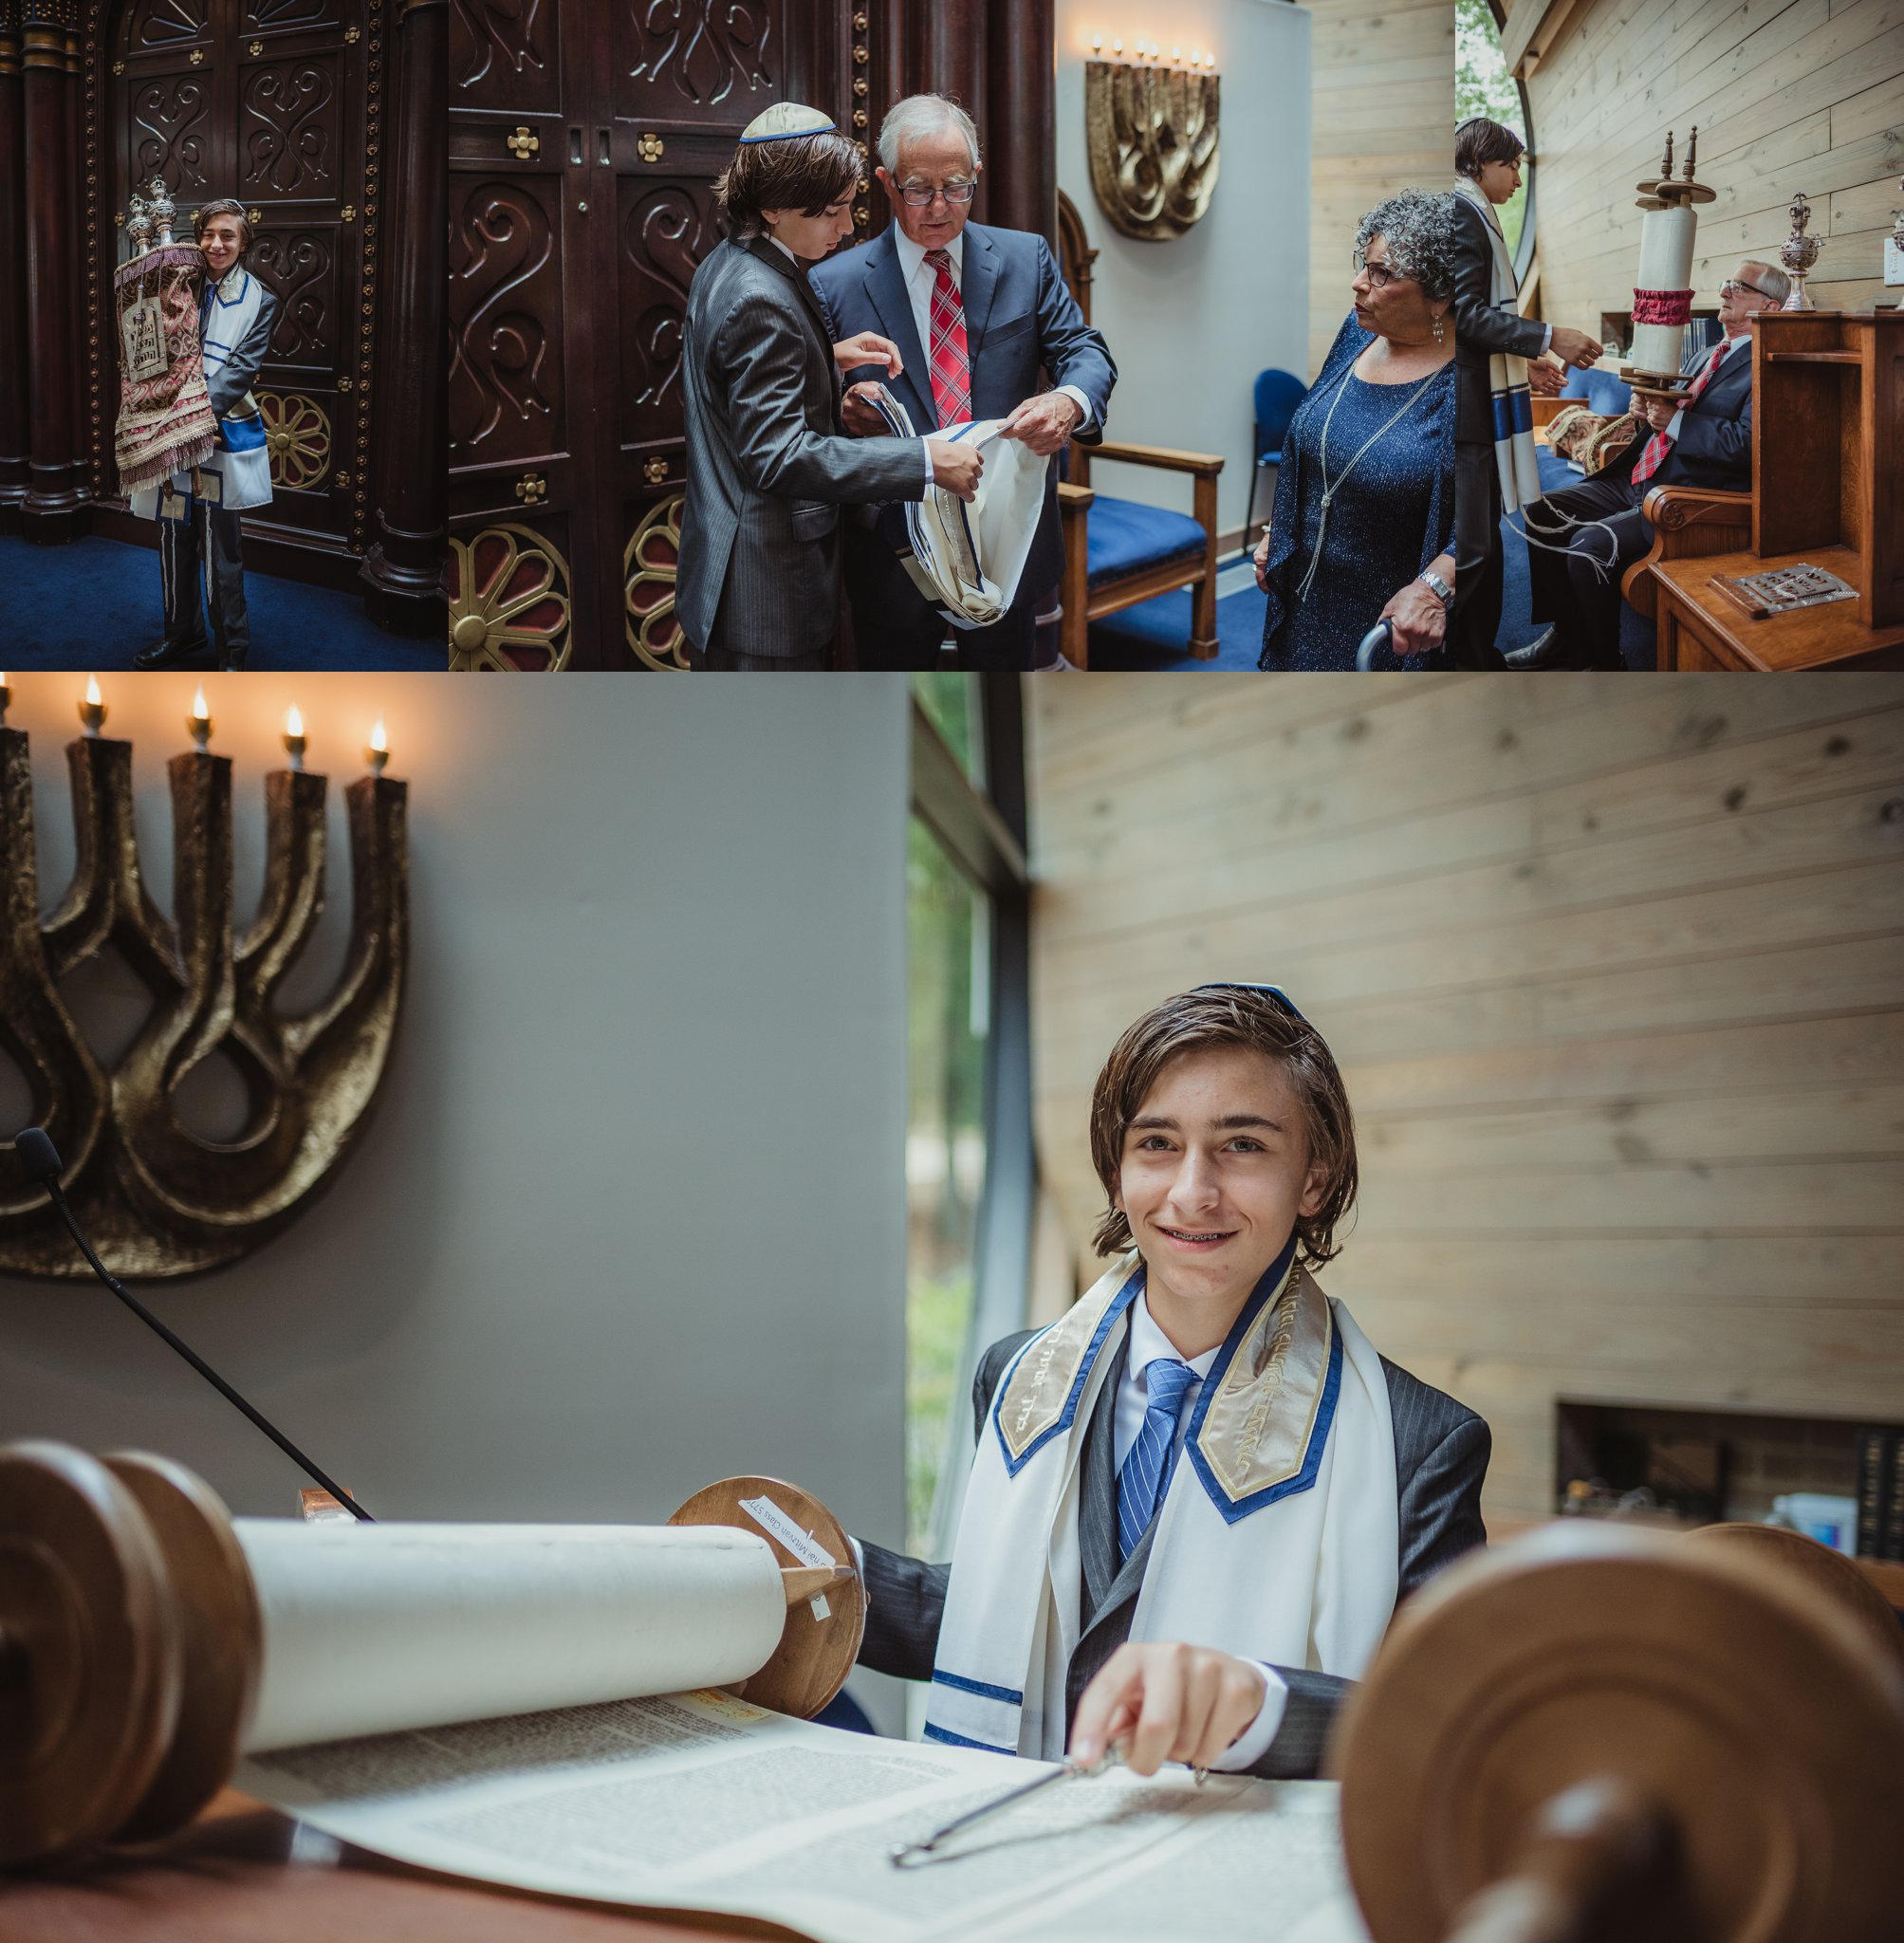 The bar mitzvah boy poses with the Torah for Rose Trail Images at Temple Beth Or in Raleigh, North Carolina.